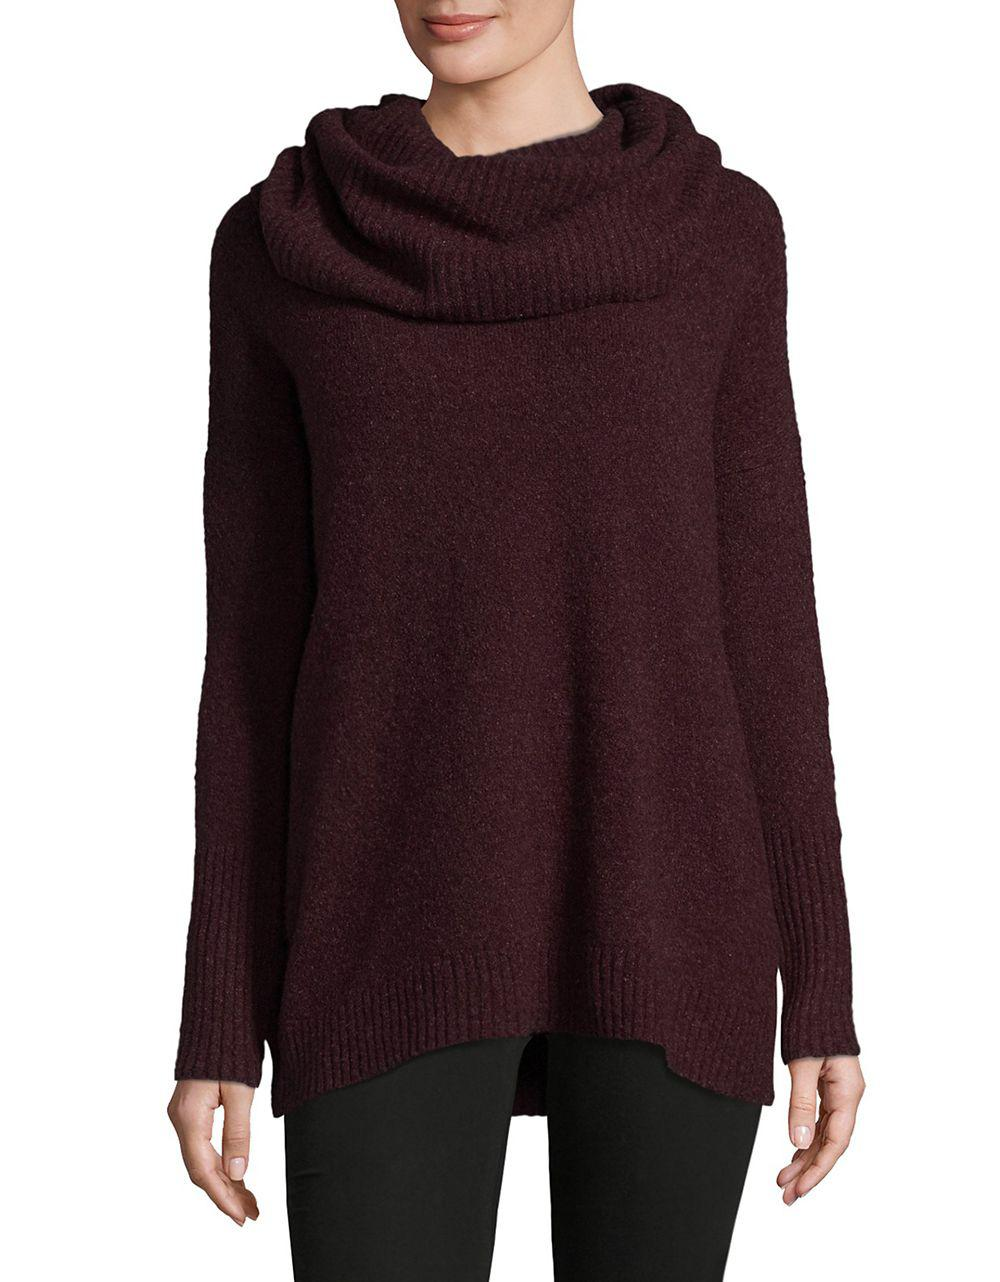 French connection Textured Cowlneck Sweater in Purple | Lyst